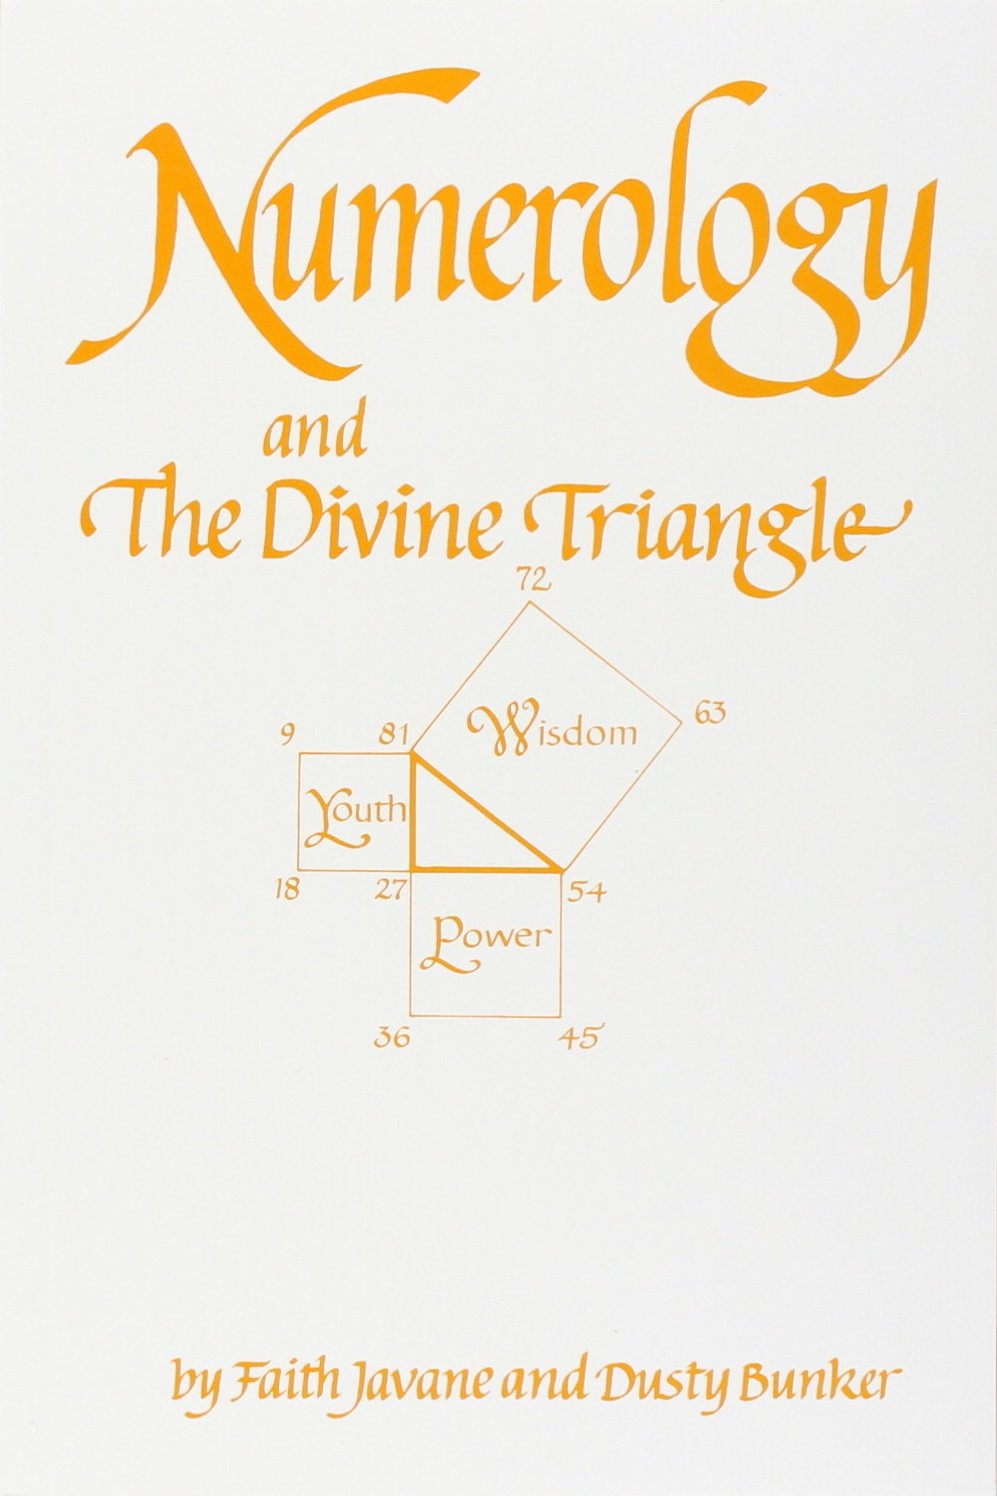 Numerology and the Divine Triangle by Faith Javane and Dusty Bunker